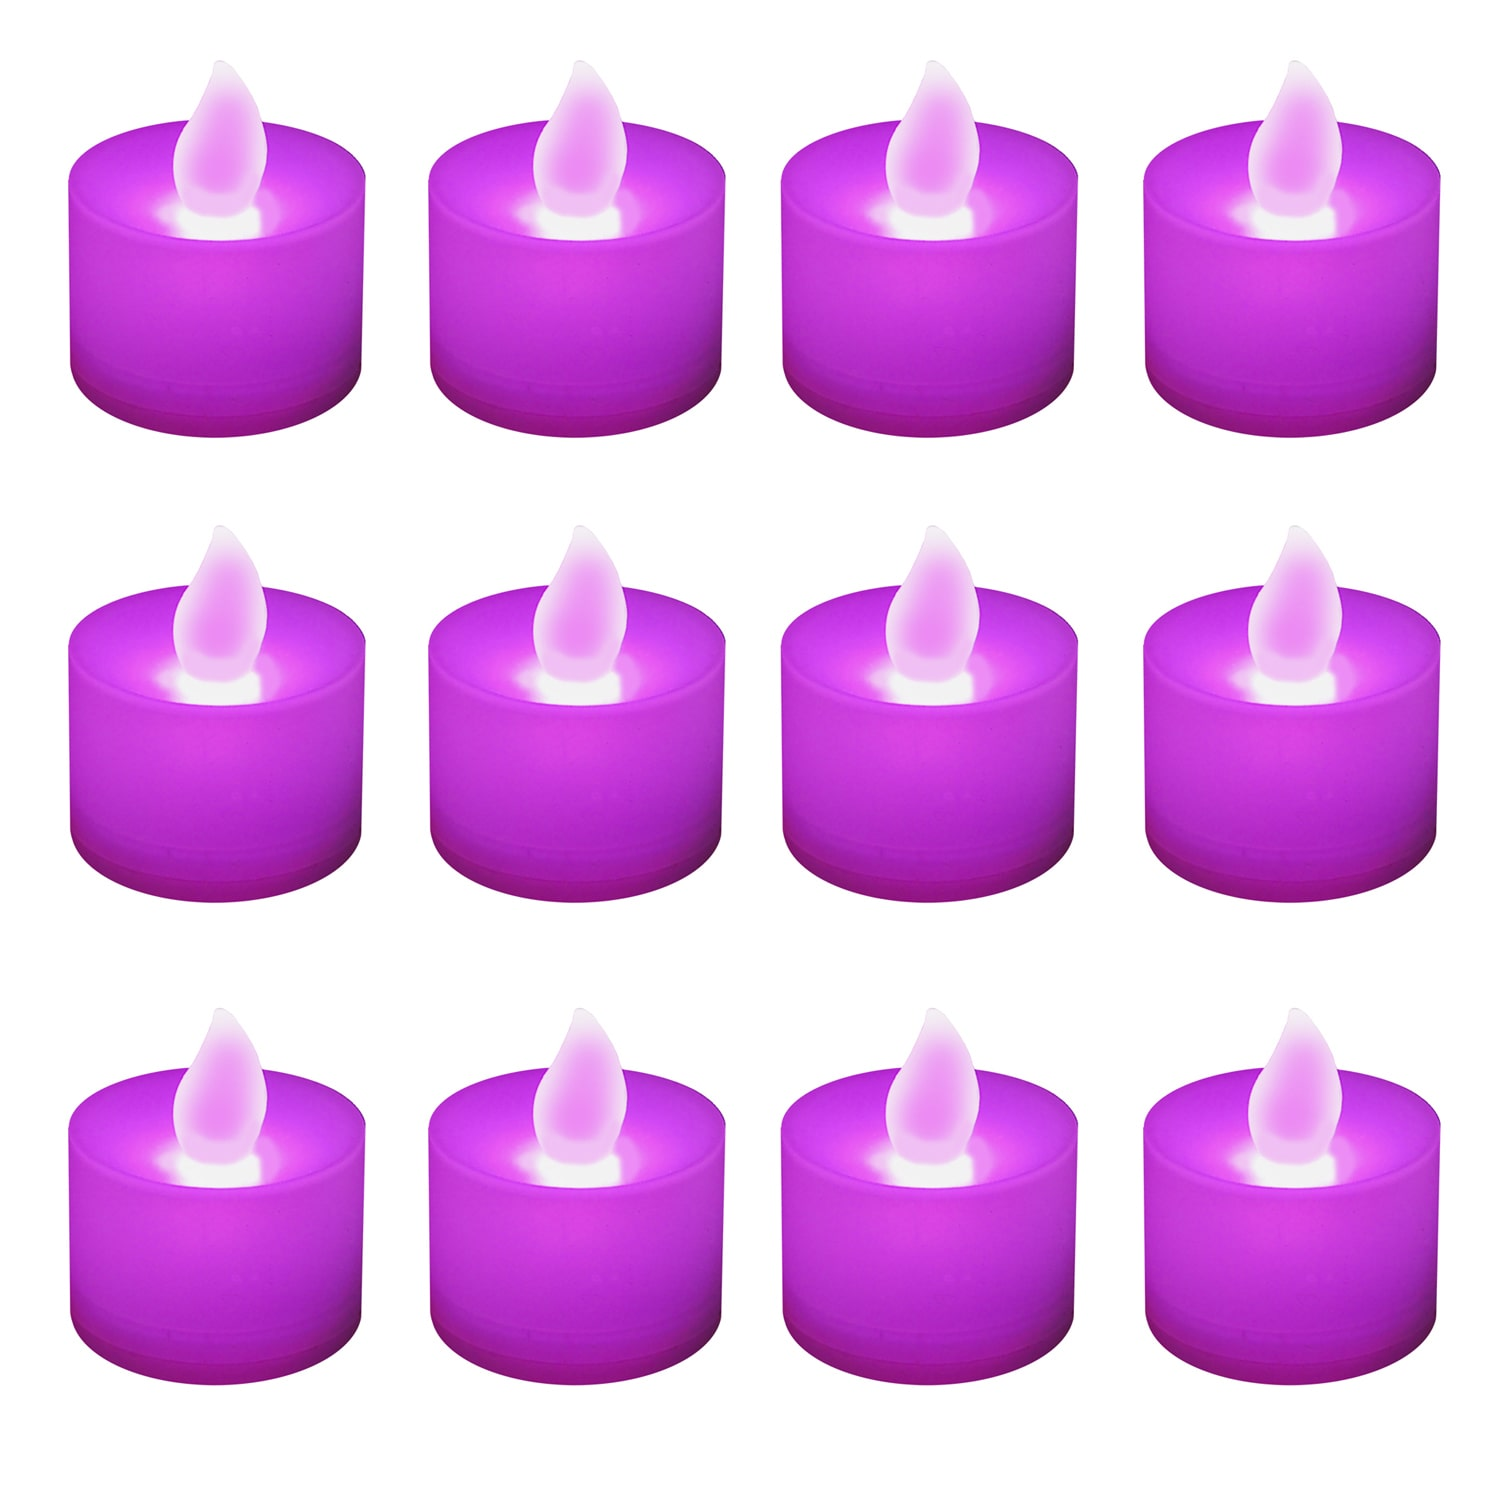 JH Specialties Inc. Battery Operated Purple LED Tea Light Candles (12-pack) by Overstock